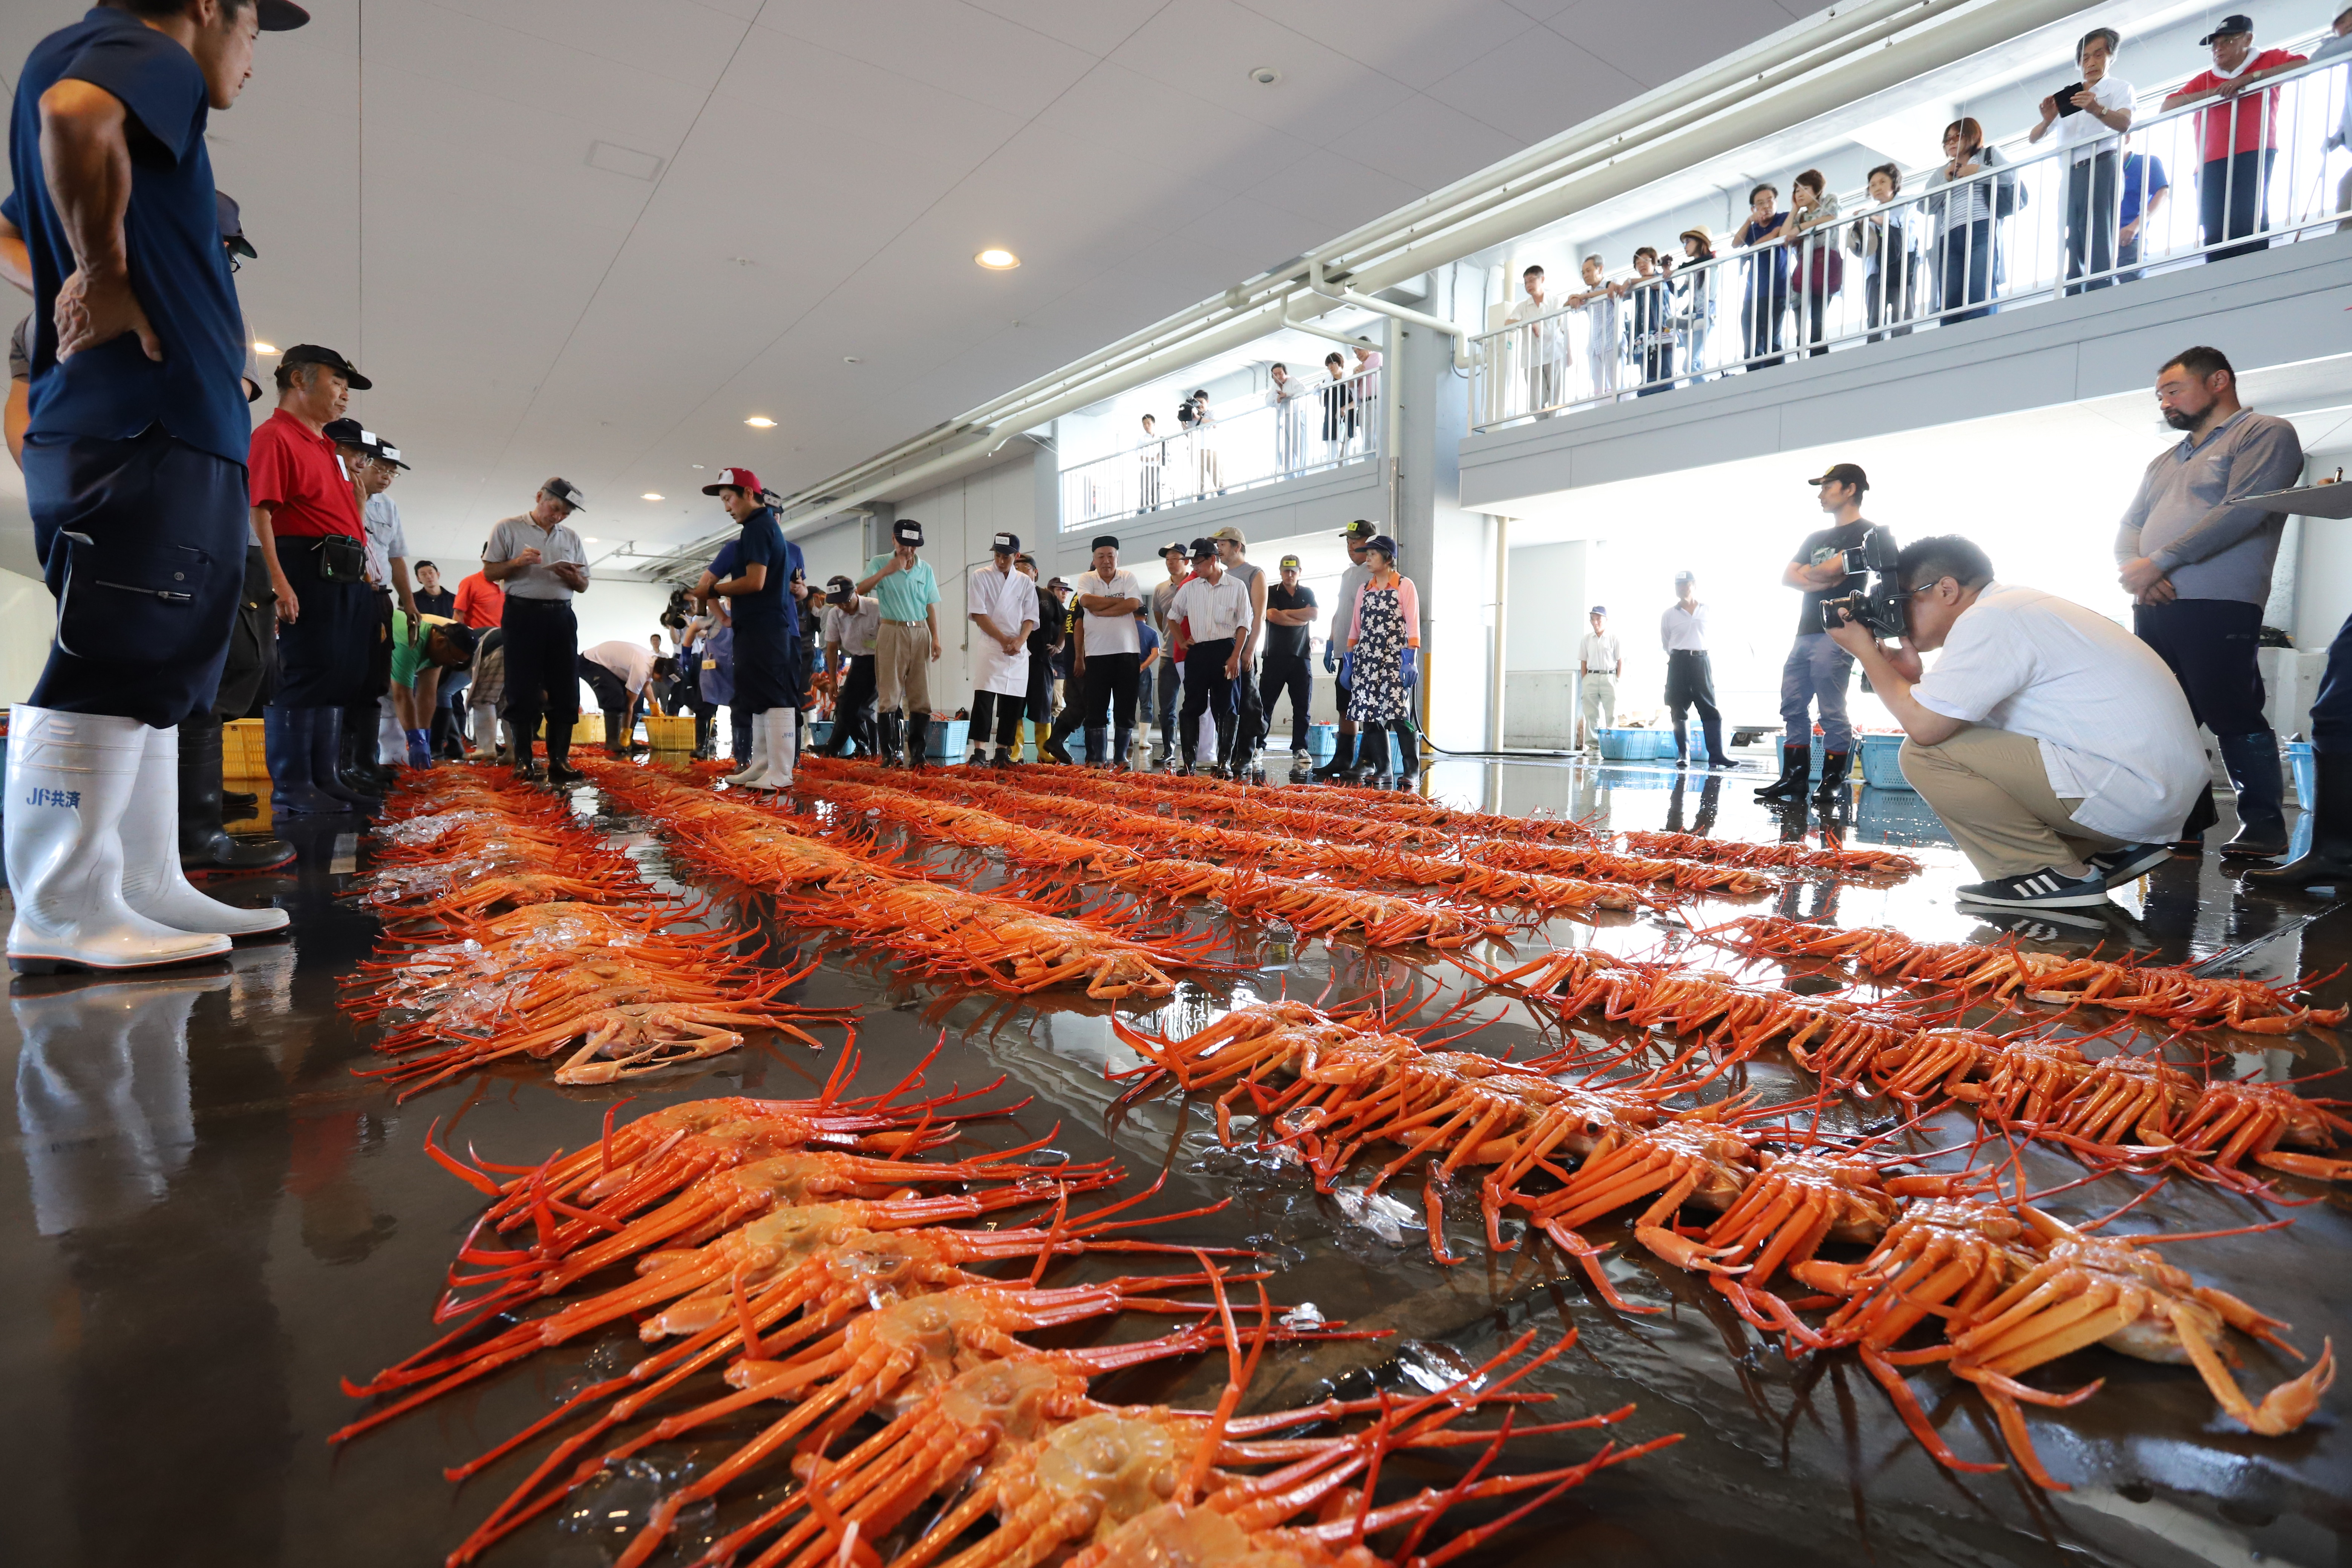 Daytime auction of red snow crabs